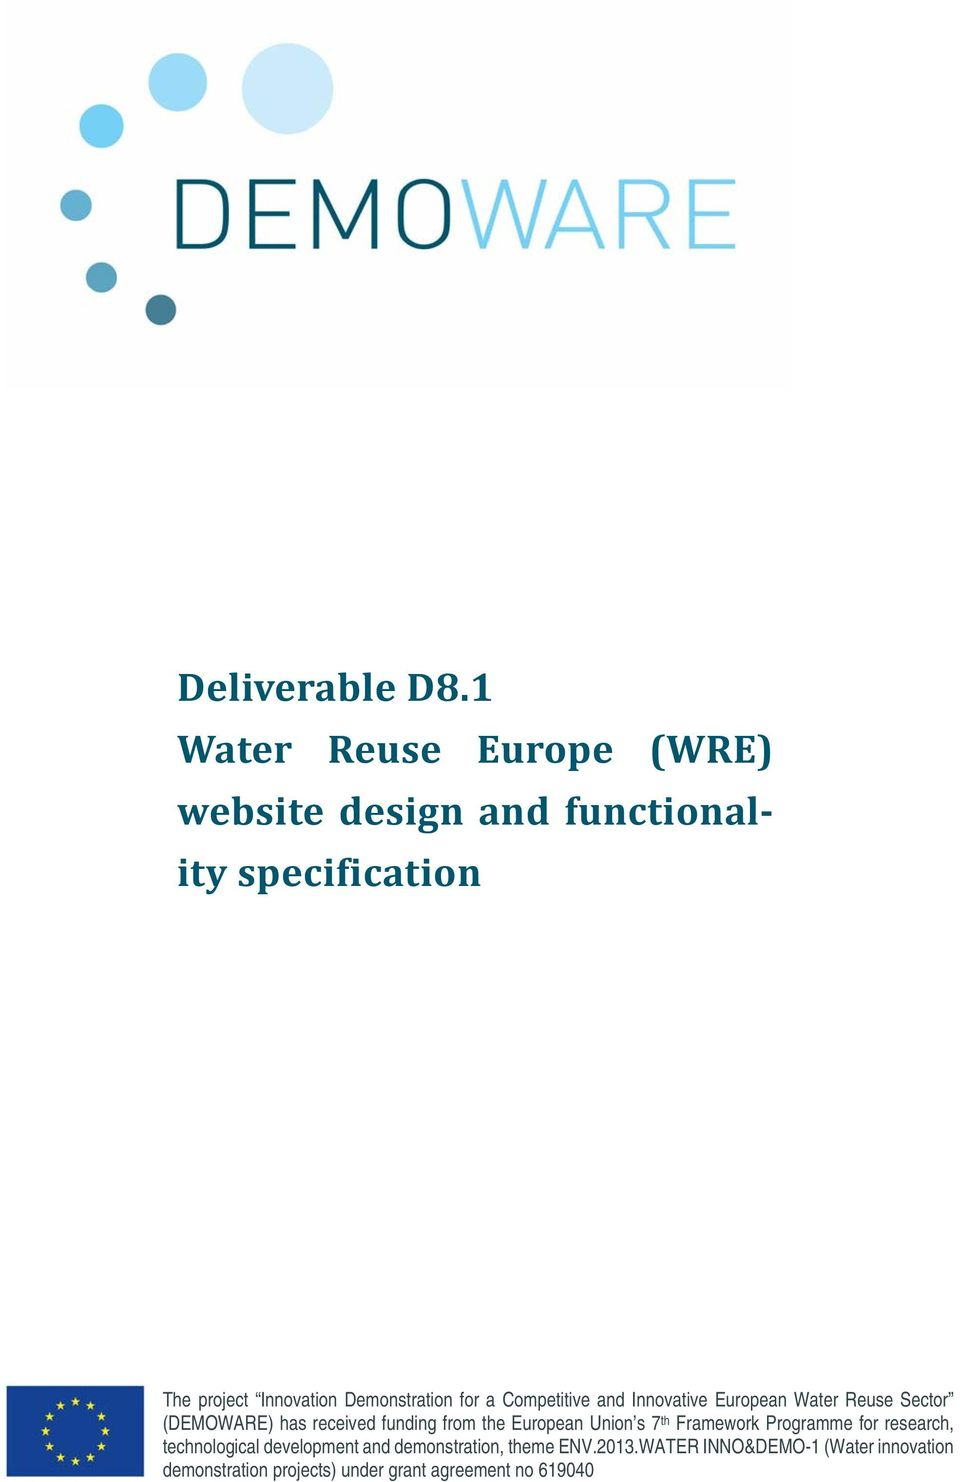 Demonstration for a Competitive and Innovative European Water Reuse Sector (DEMOWARE) has received funding